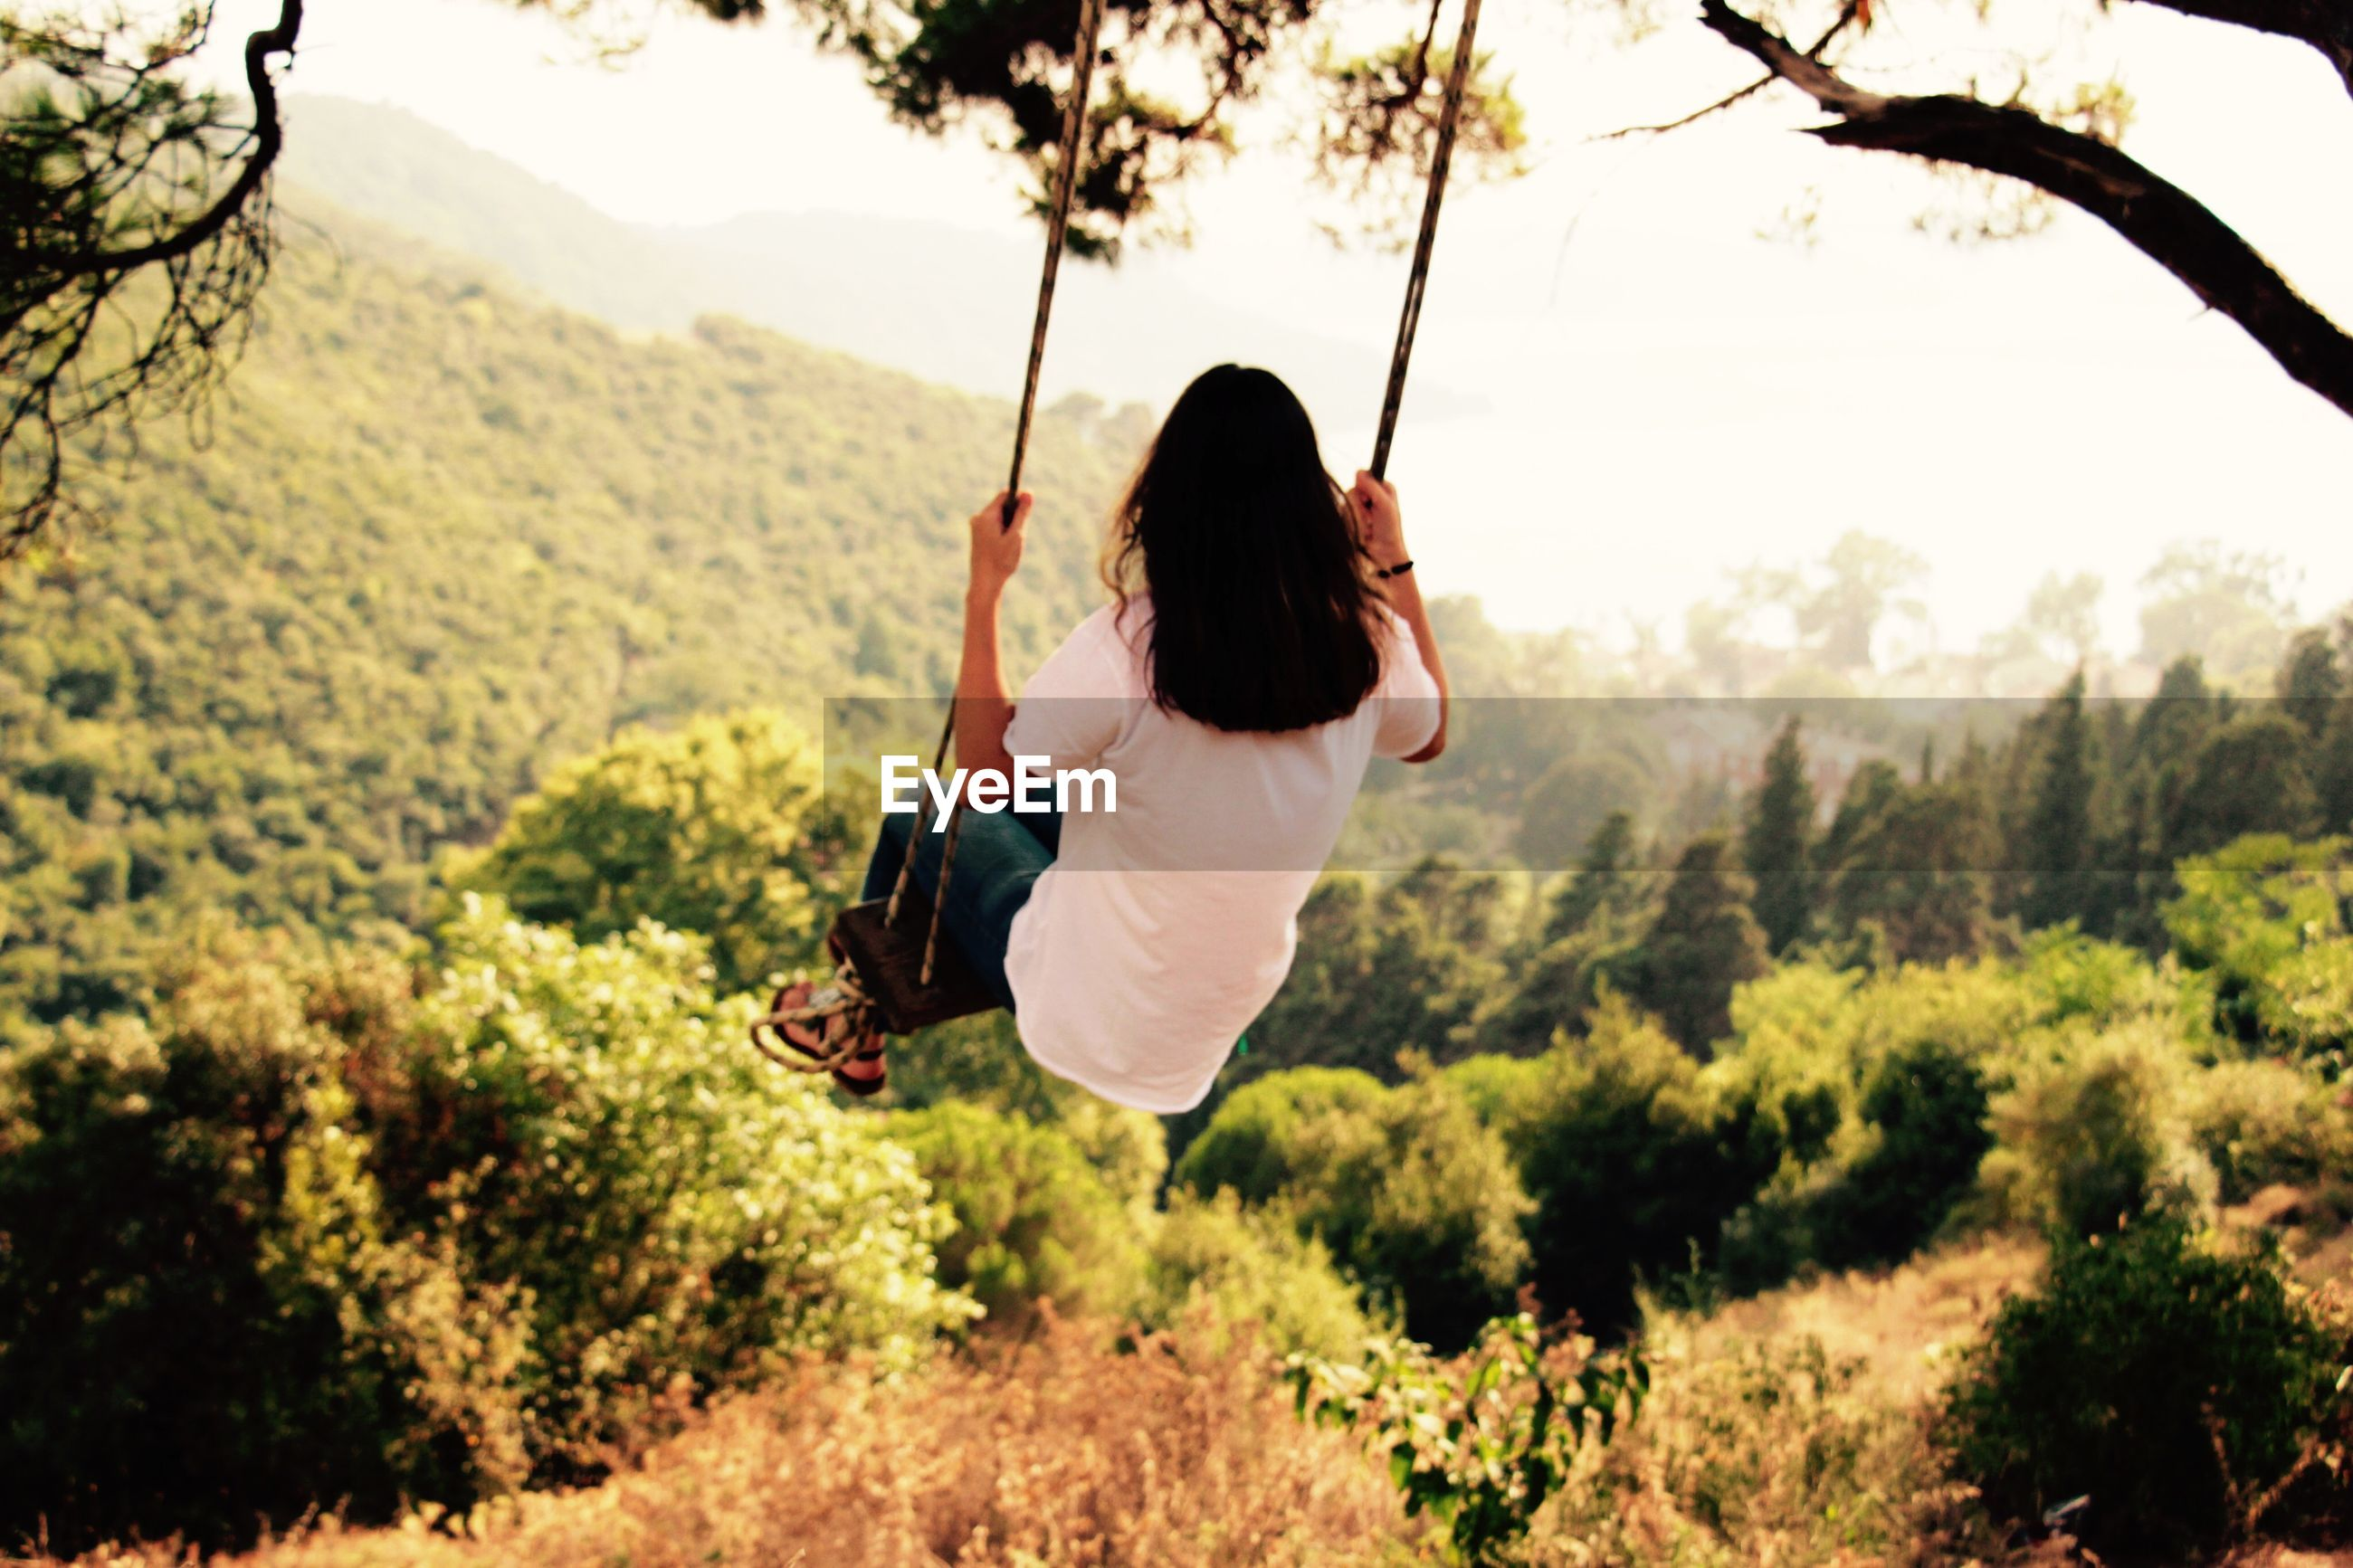 Rear view of woman on rope swing against mountains